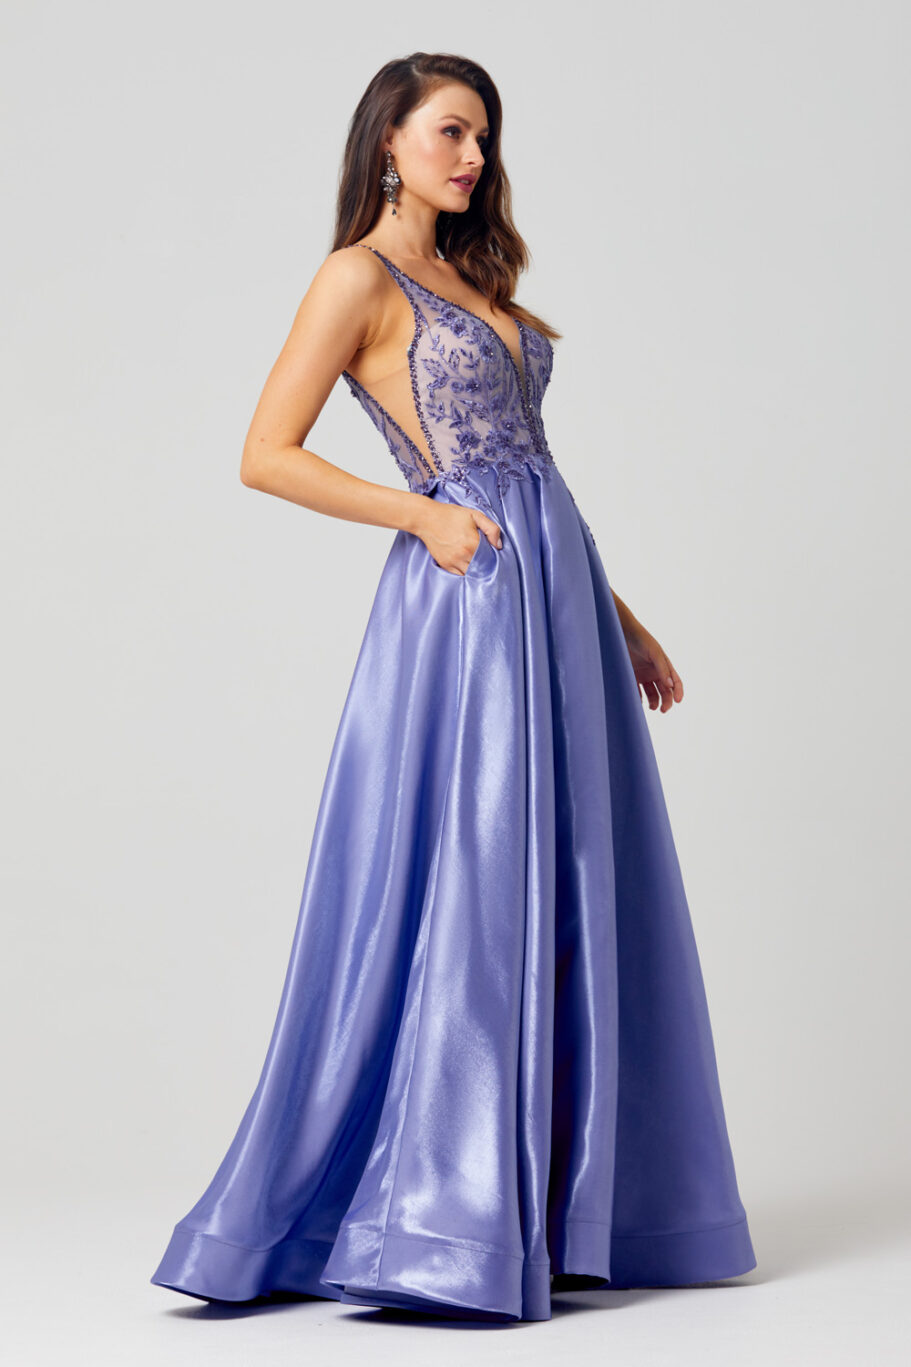 Mieka Floral Embroidered Prom Dress - PO879 side